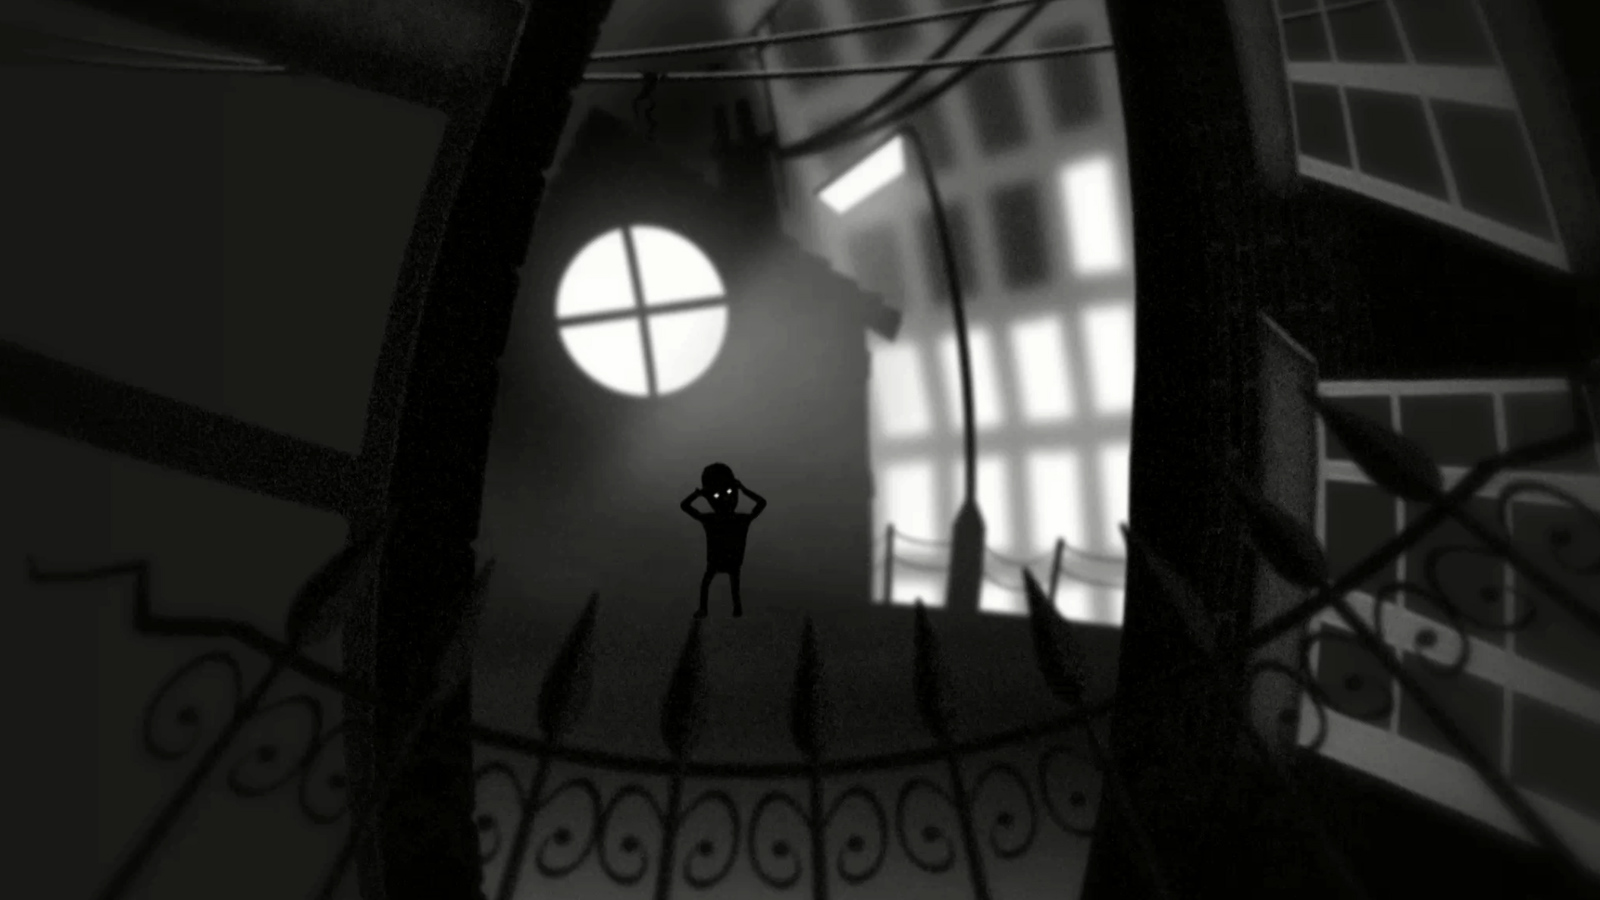 Still from the animation, The boy I used to know